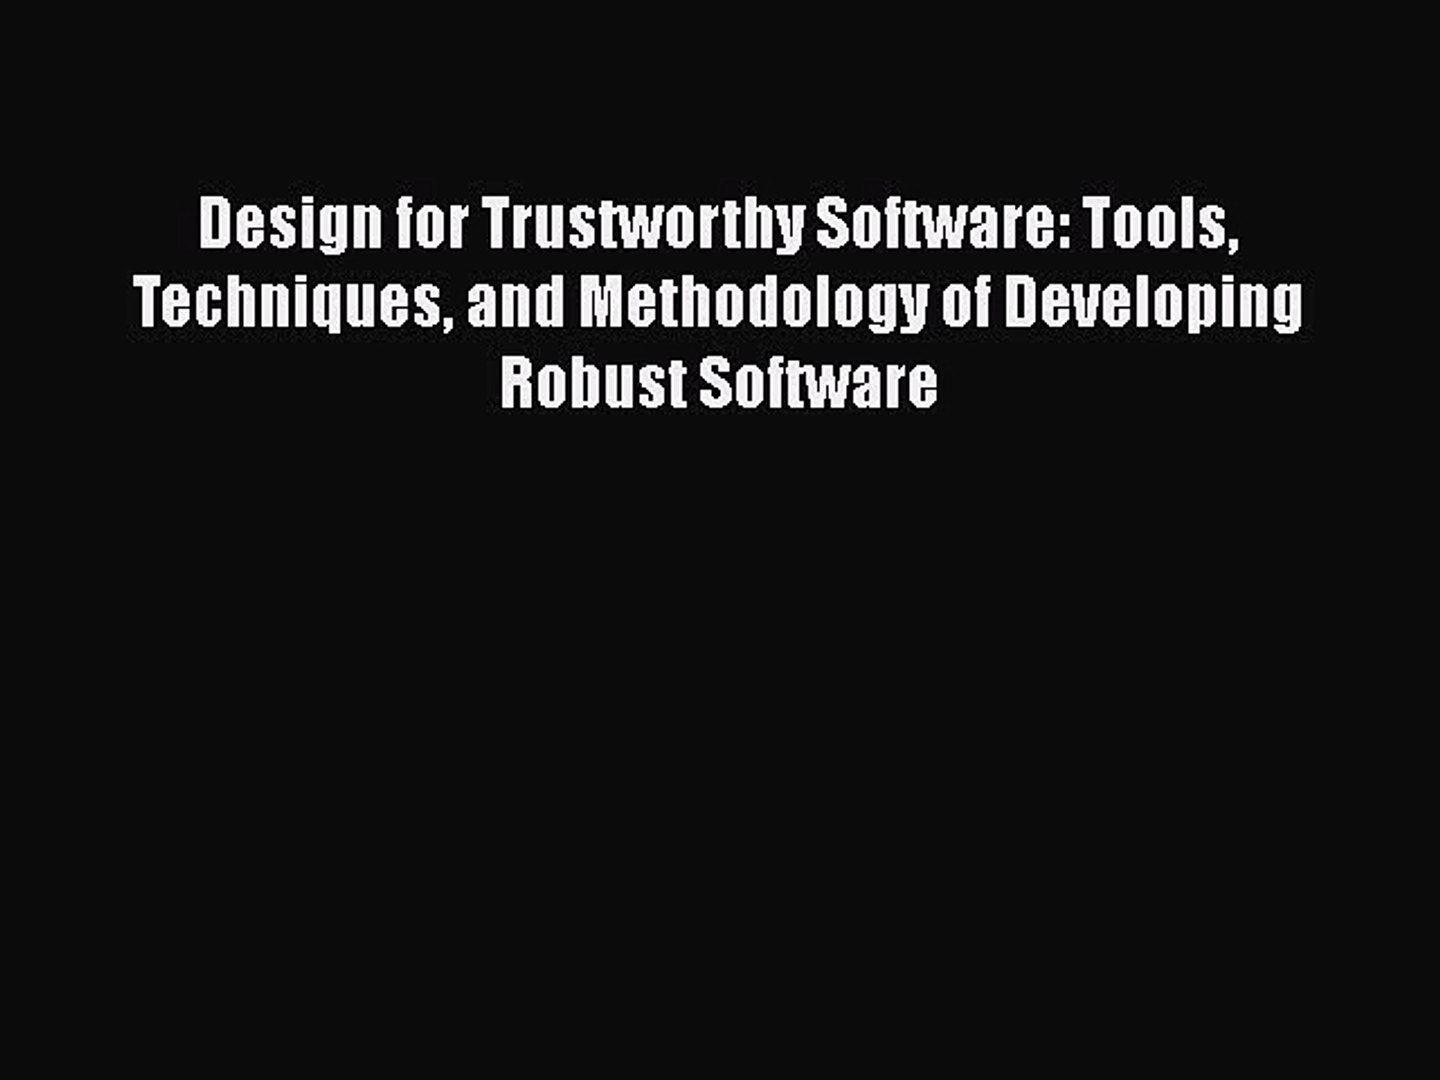 Pdf Download Design For Trustworthy Software Tools Techniques And Methodology Of Developing Video Dailymotion